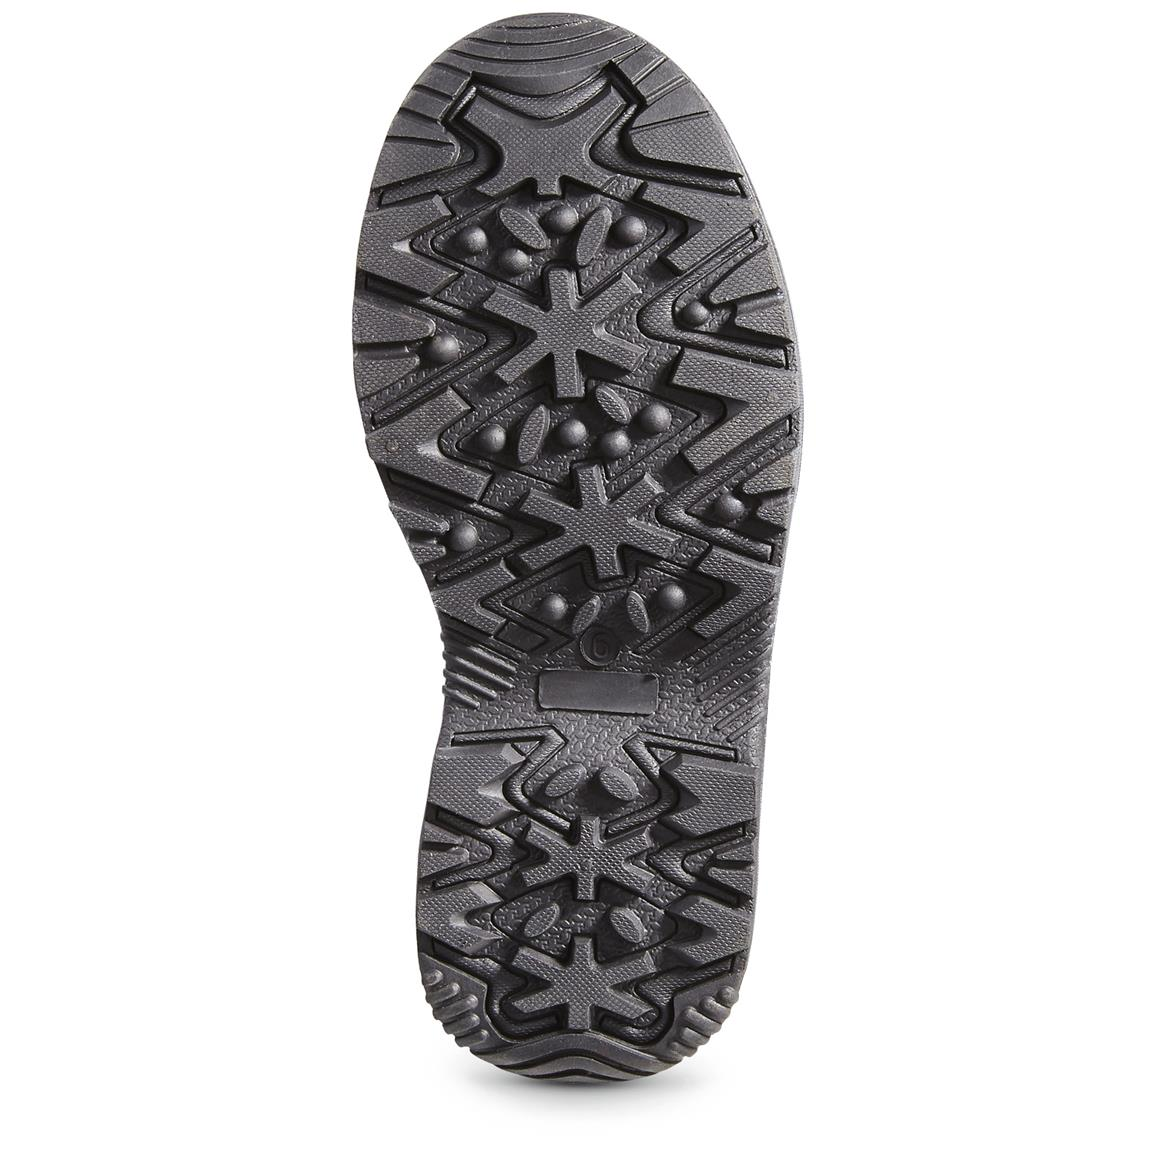 Sure-grip rubber outsole